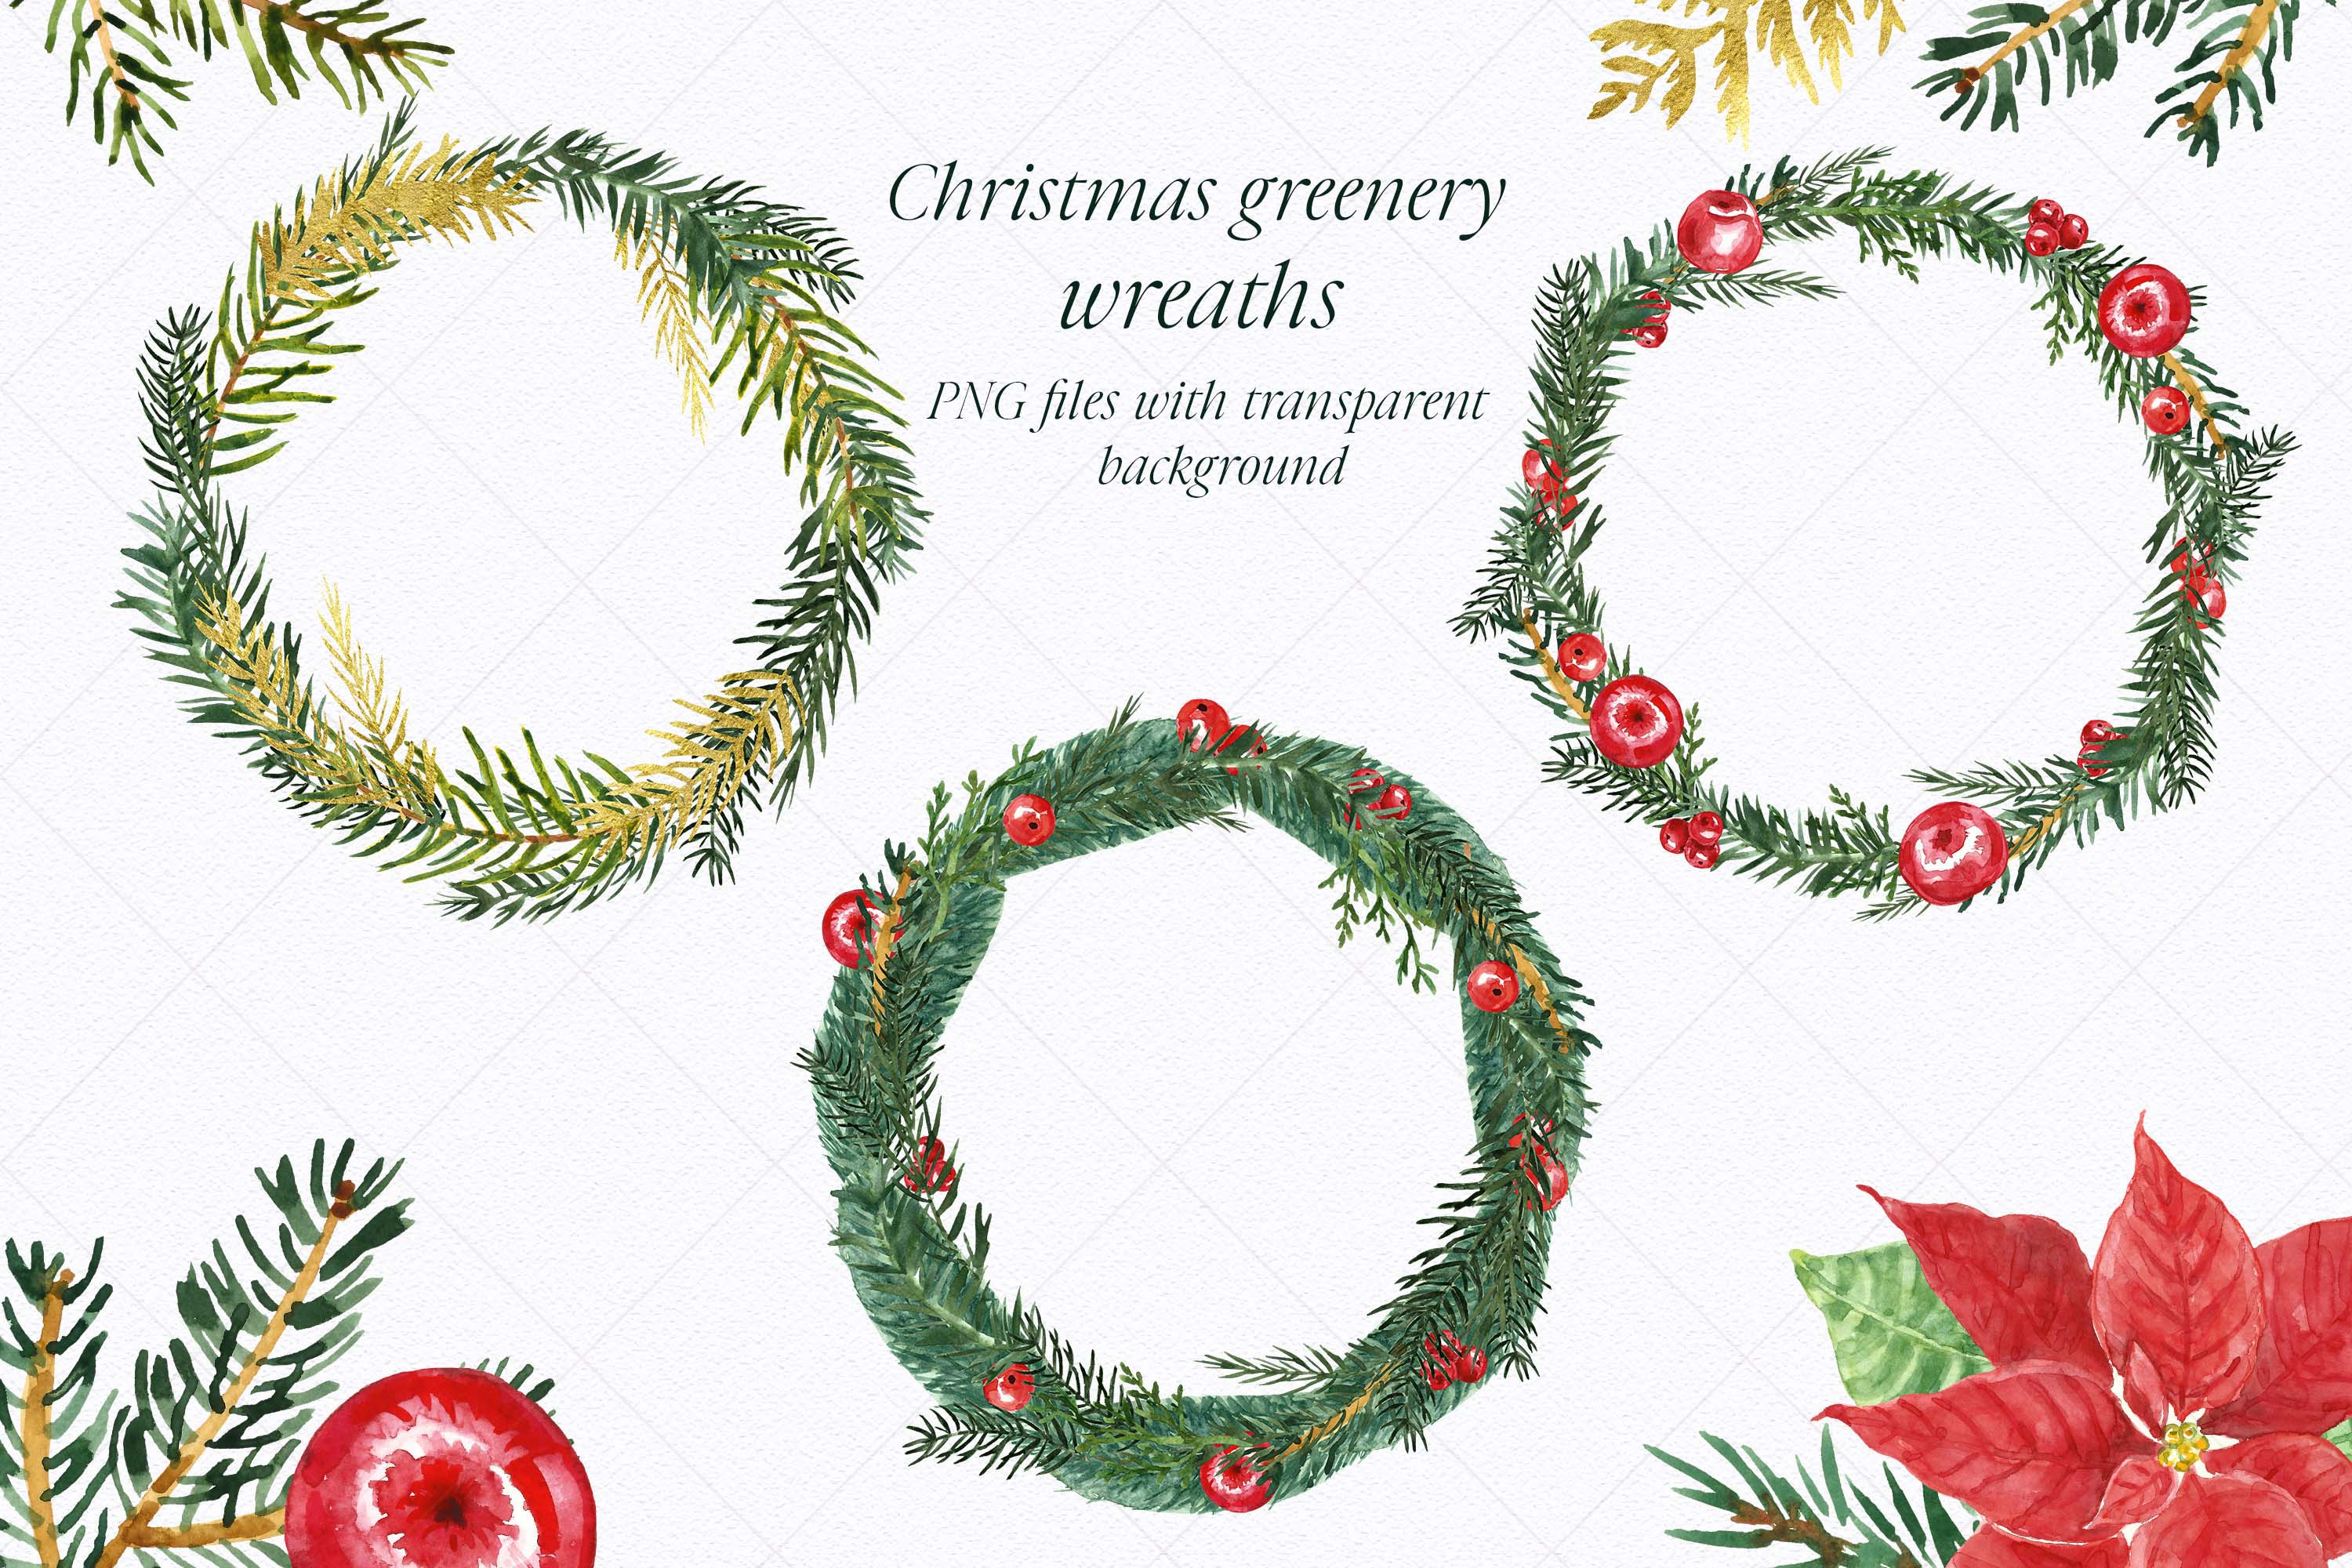 Watercolor Christmas Wreath Holiday Winter Borders Greenery example image 2